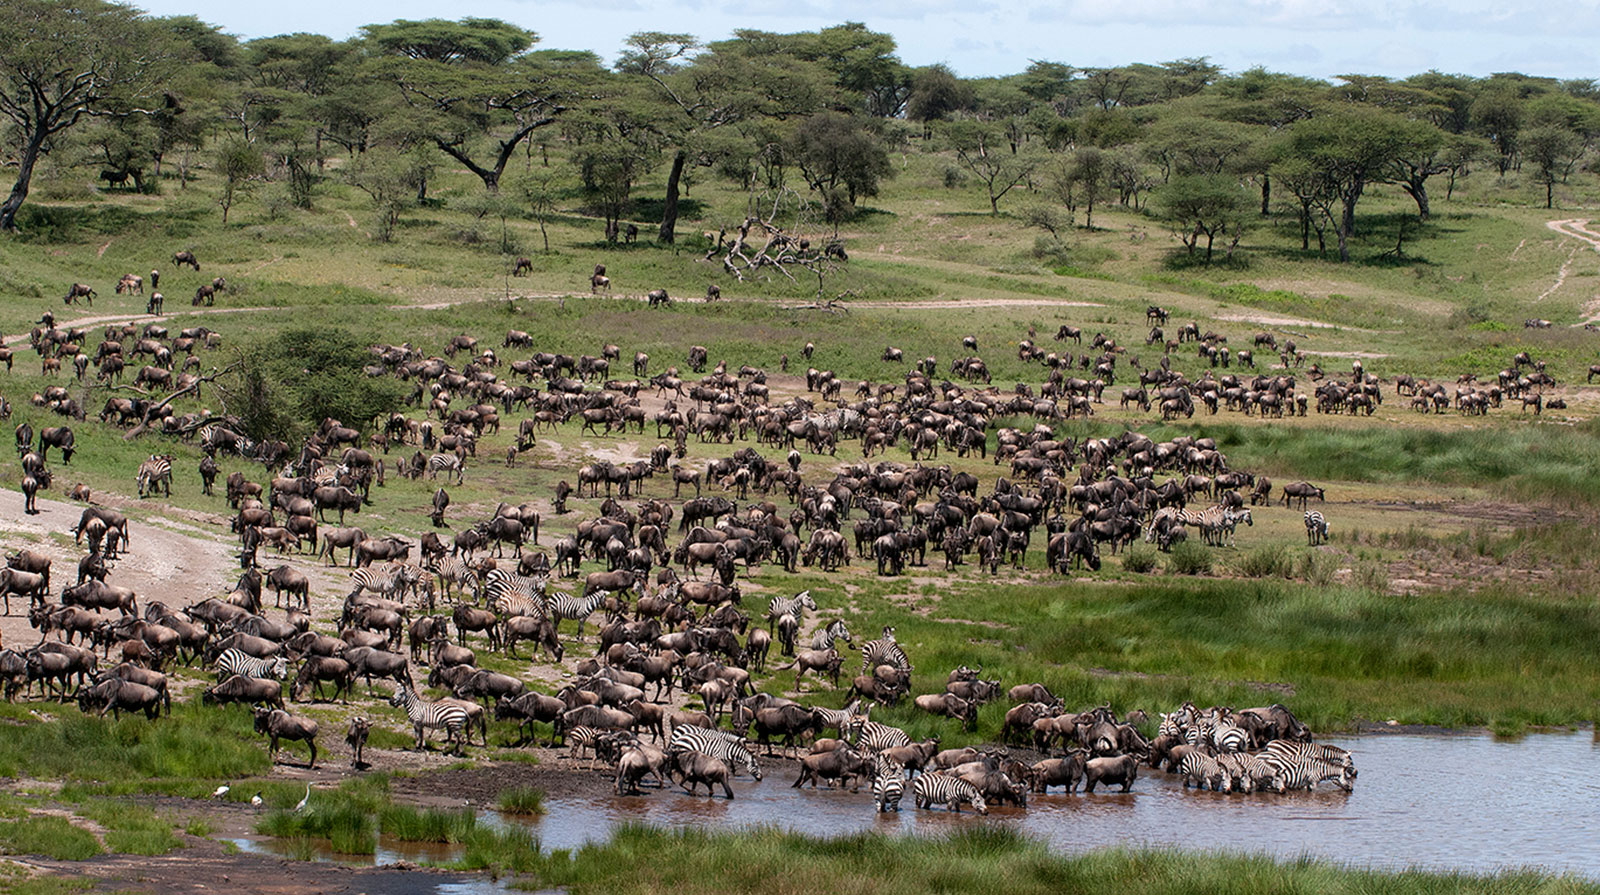 Olaado Camp - Amidst the great migration